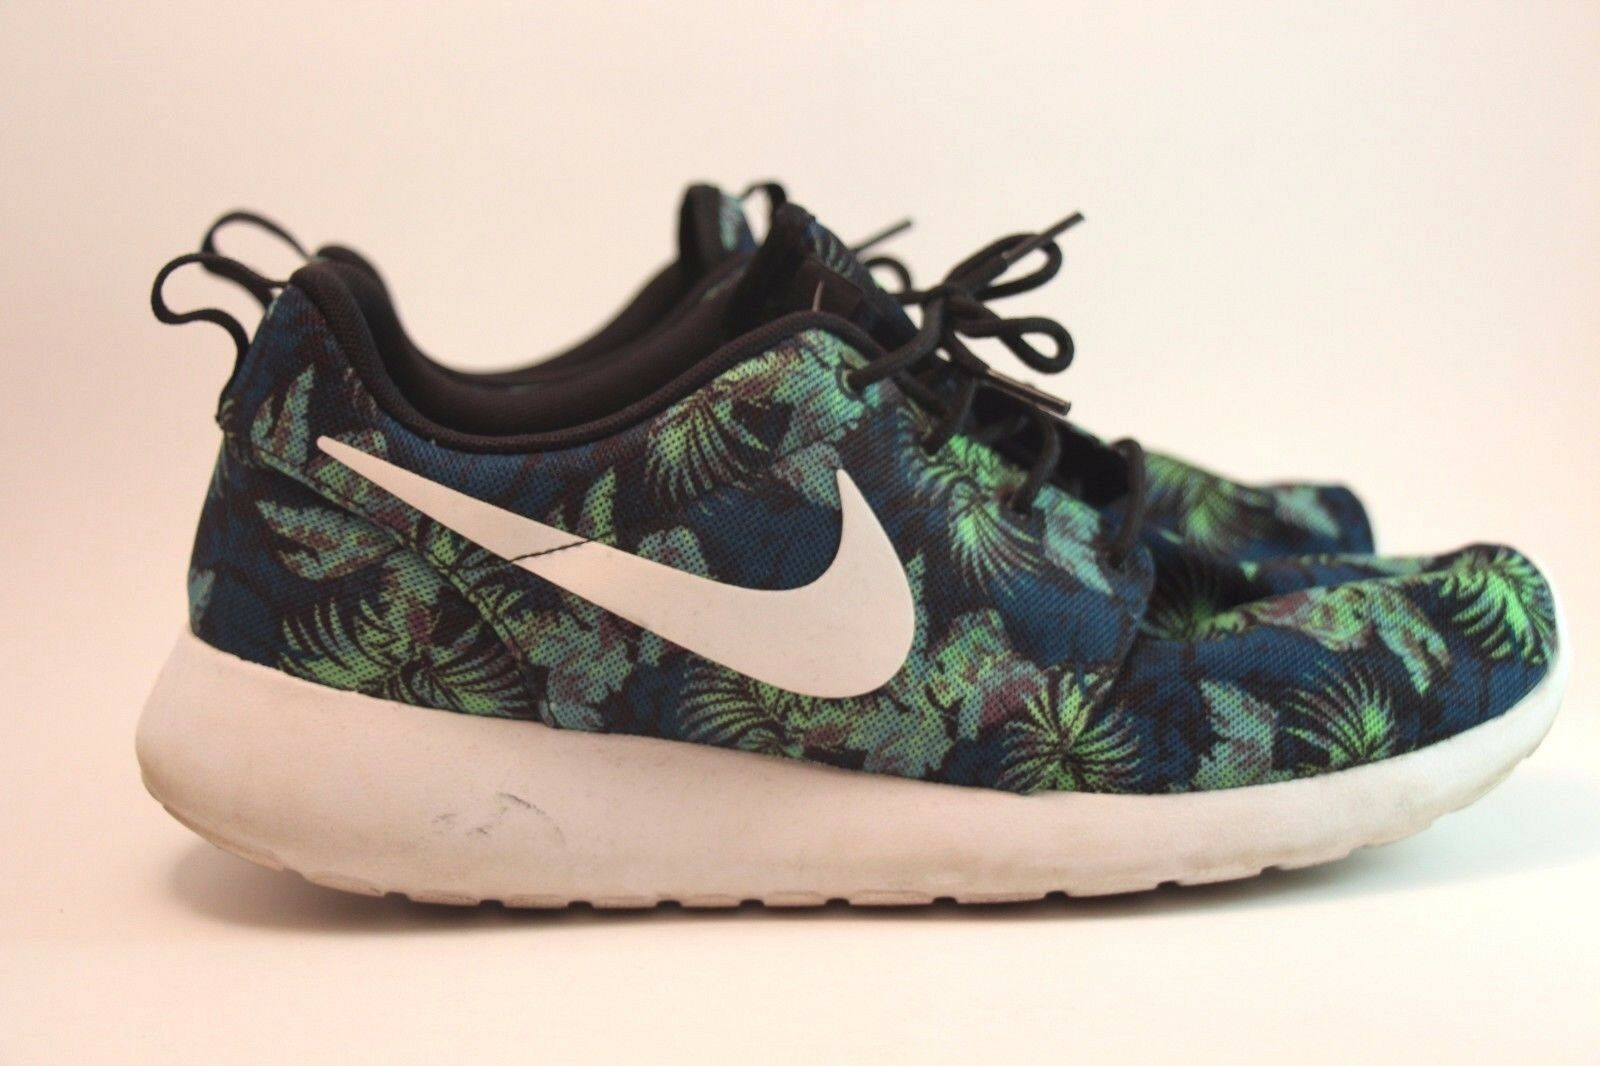 Nike Roshe Run (Space Blue Poison Green Palm Tree) US SZ 10